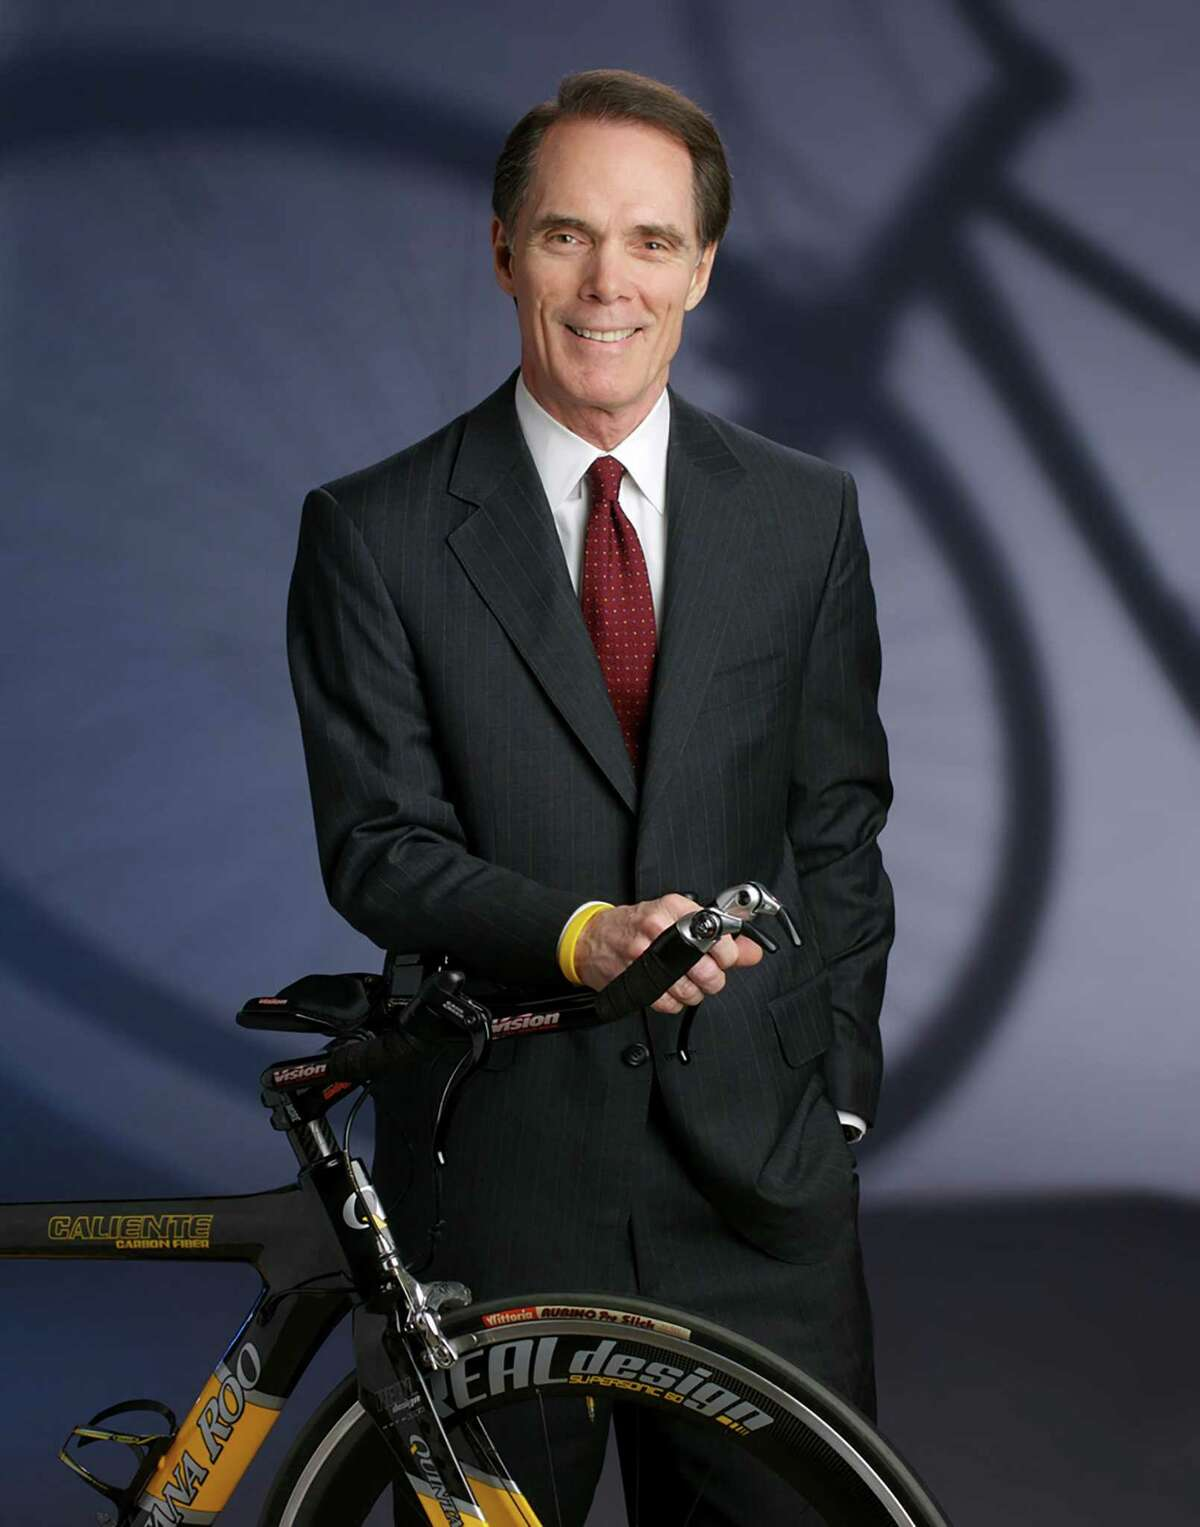 David Holsey, who served two terms on the Lone Star College board of trustees, is a dentist and national-ranking triathlete with experience as a homeowner's association board member, dental professor and regional mentor for the Lance Armstrong Foundation.